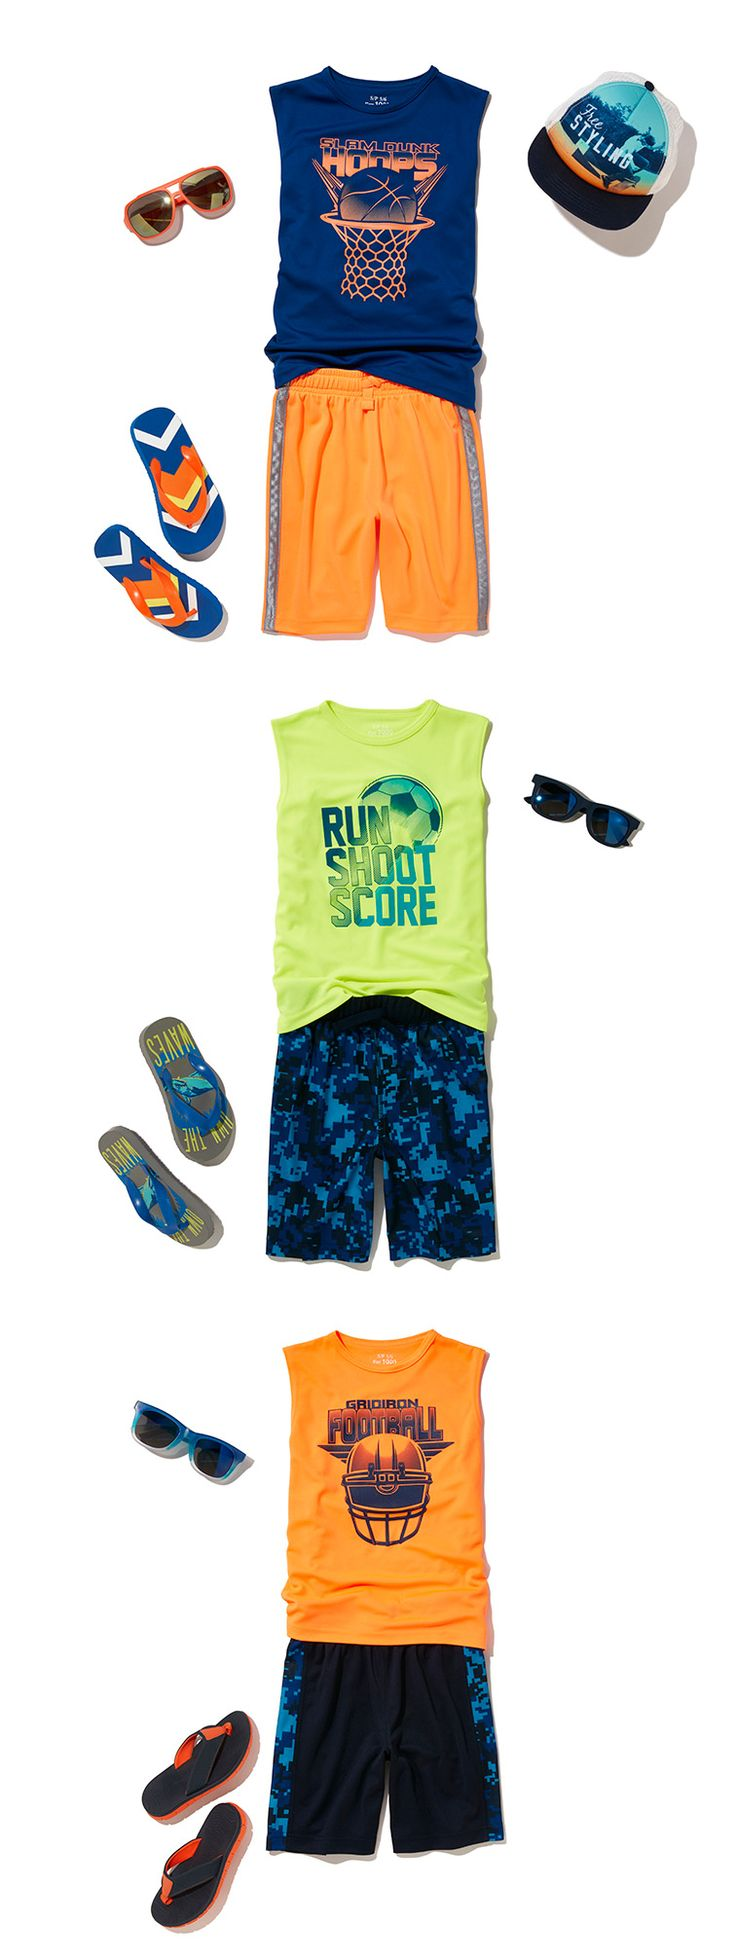 Boys' Clothing   Kids' Outfits   Active Wear   Graphic Tank   Printed Knit Shorts   Flip Flops   Sunglasses   Hat   The Children's Place